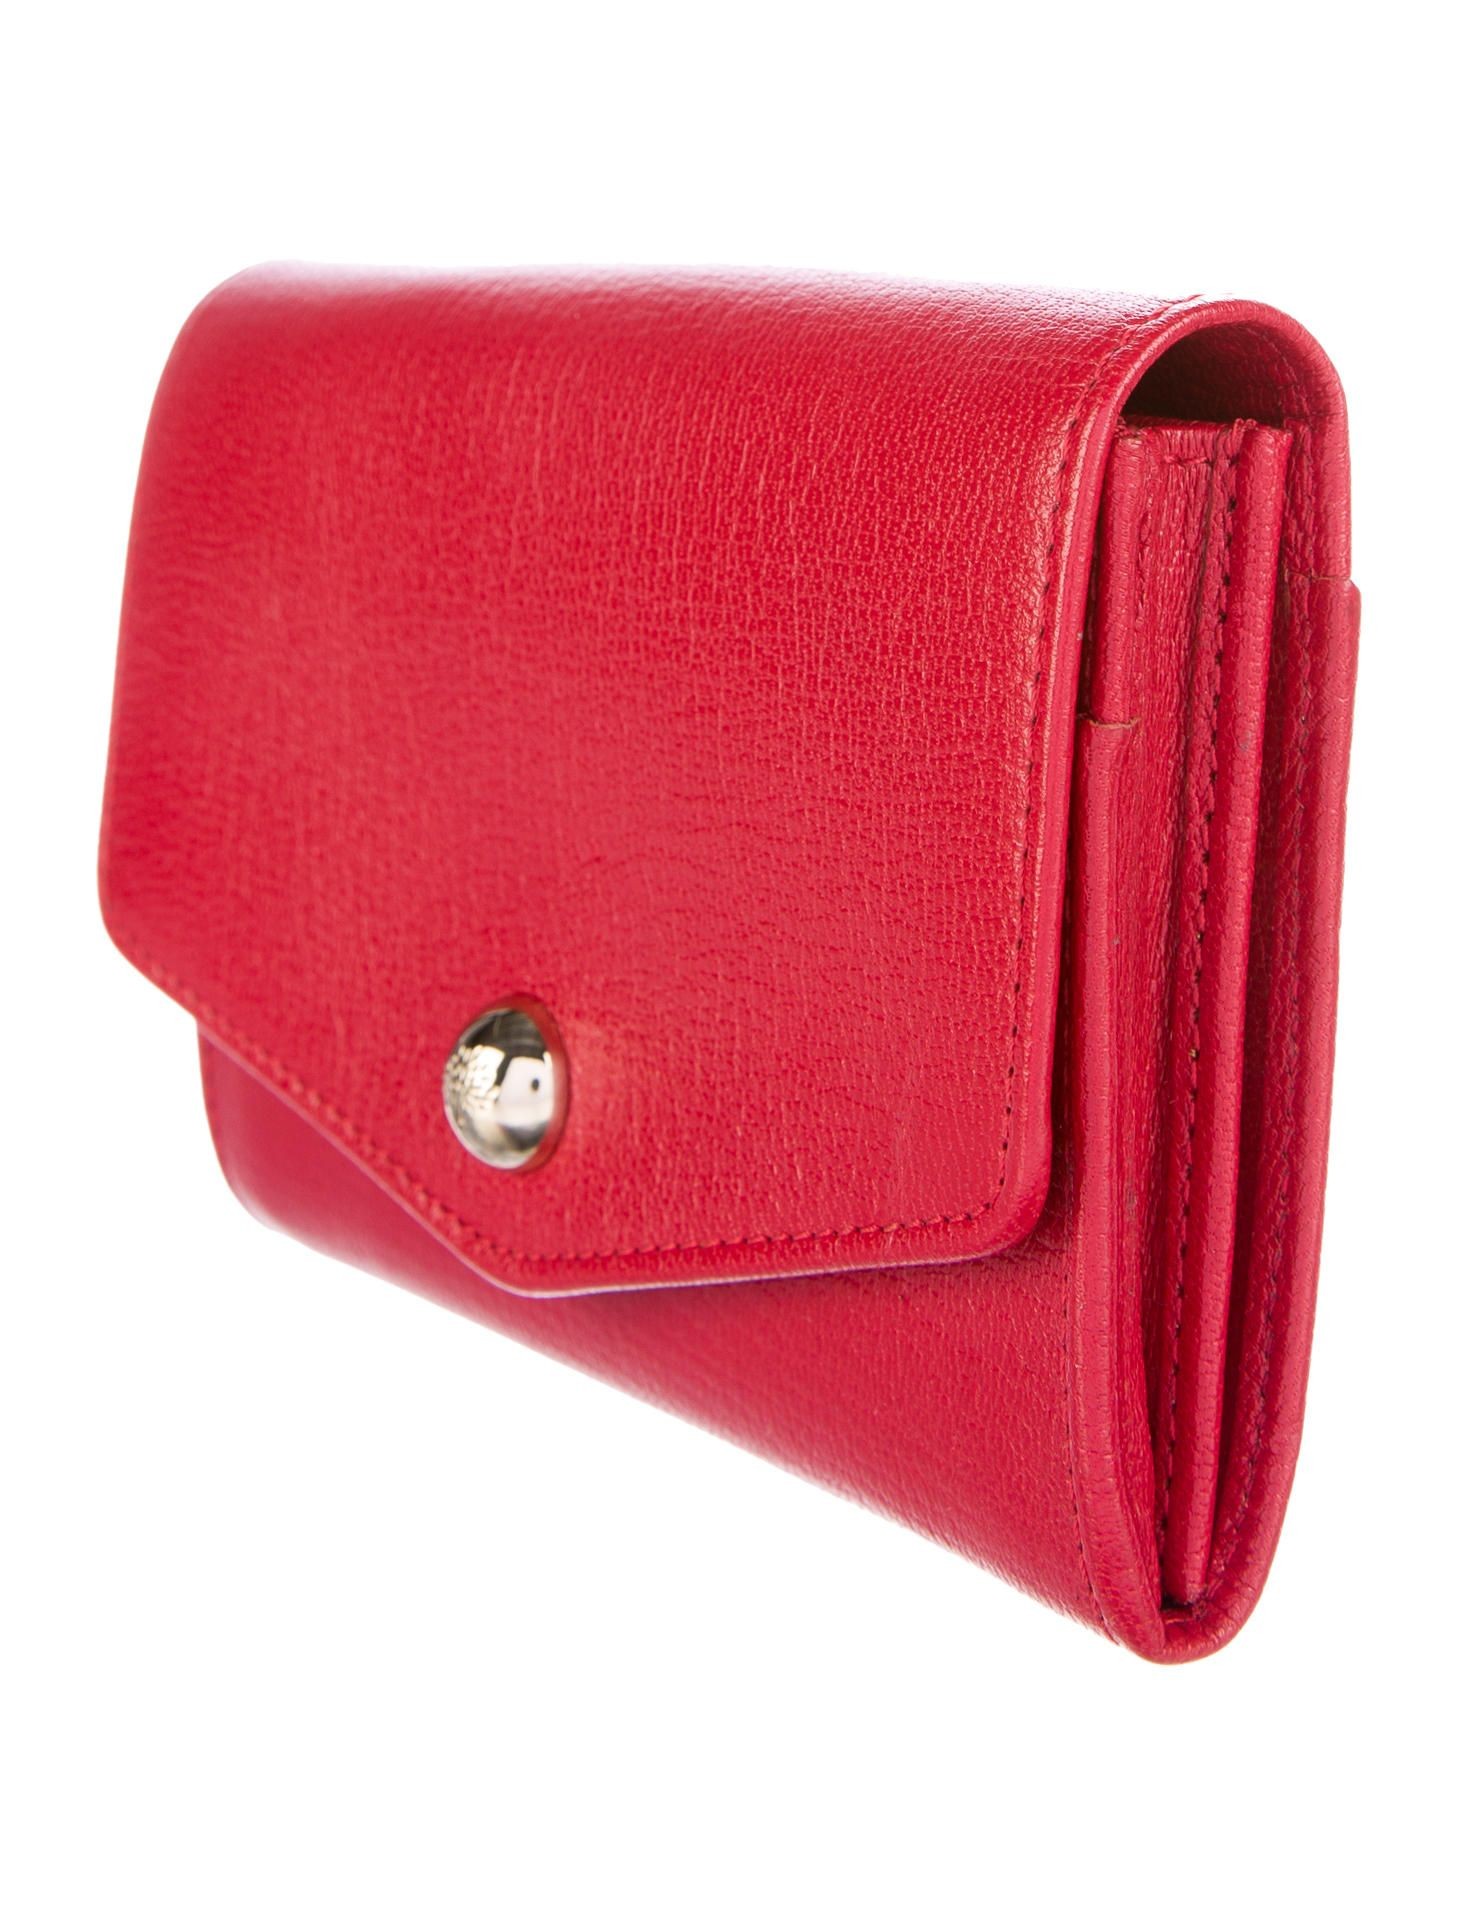 8e2ed53ad946 Red leather Mulberry compact wallet with gold-tone hardware